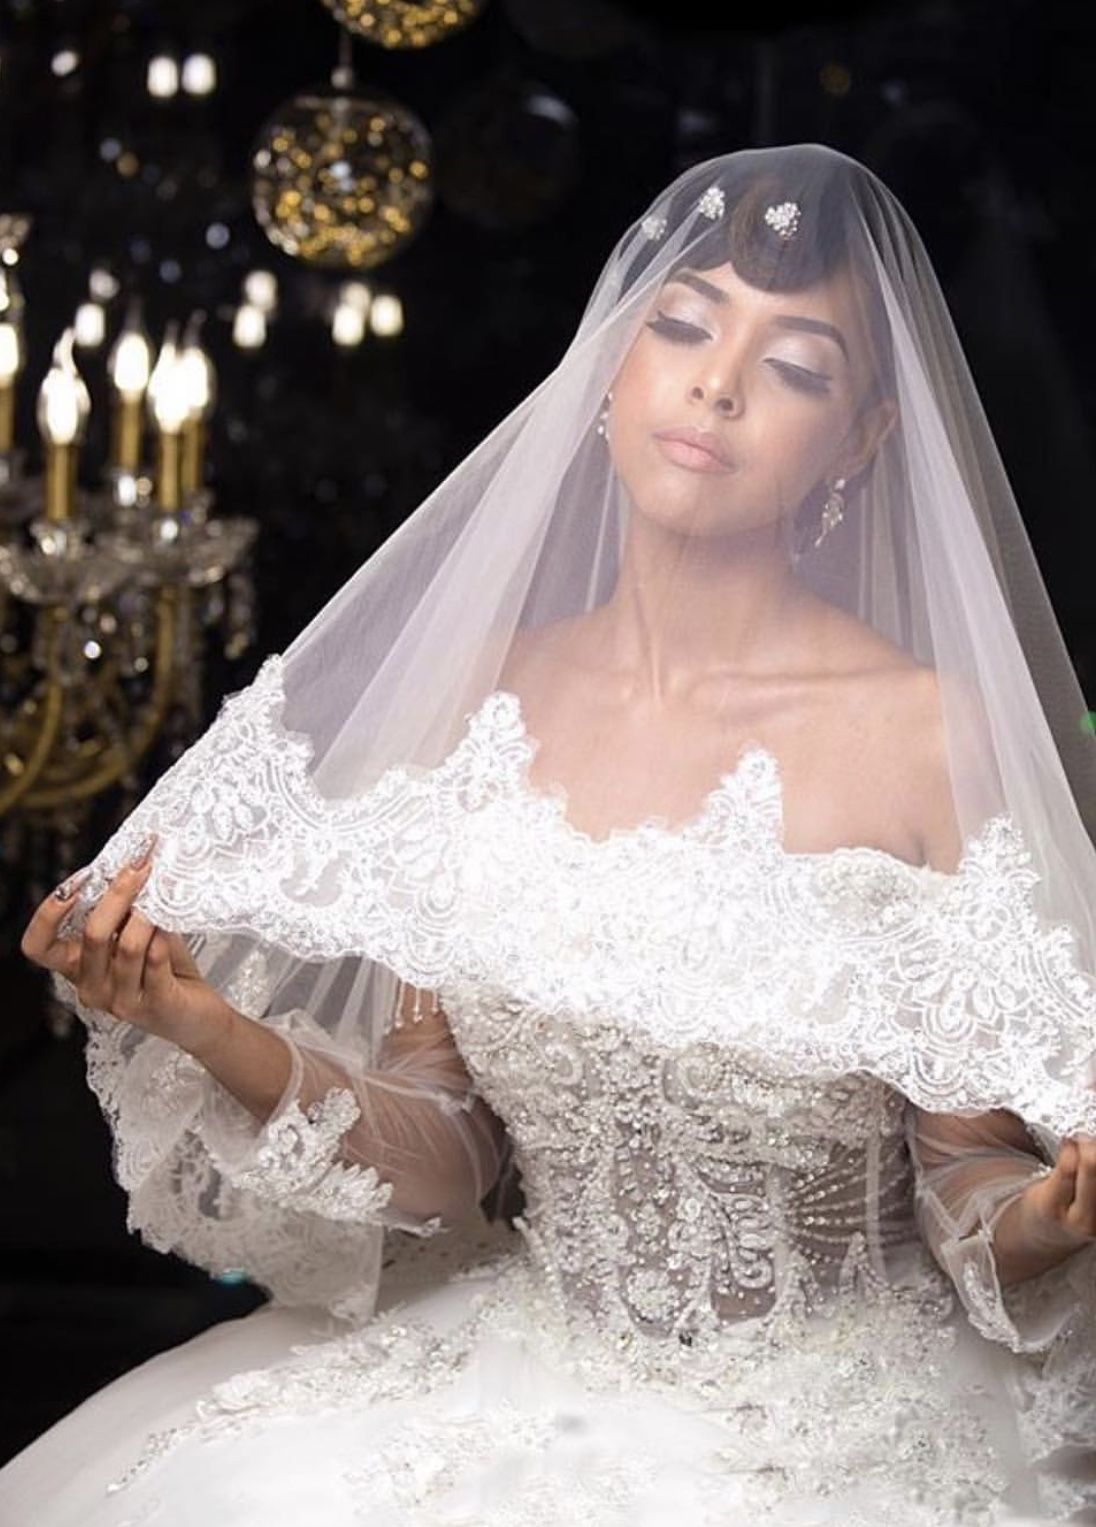 Pin by paris on ball gown bridal pinterest ball gowns and weddings